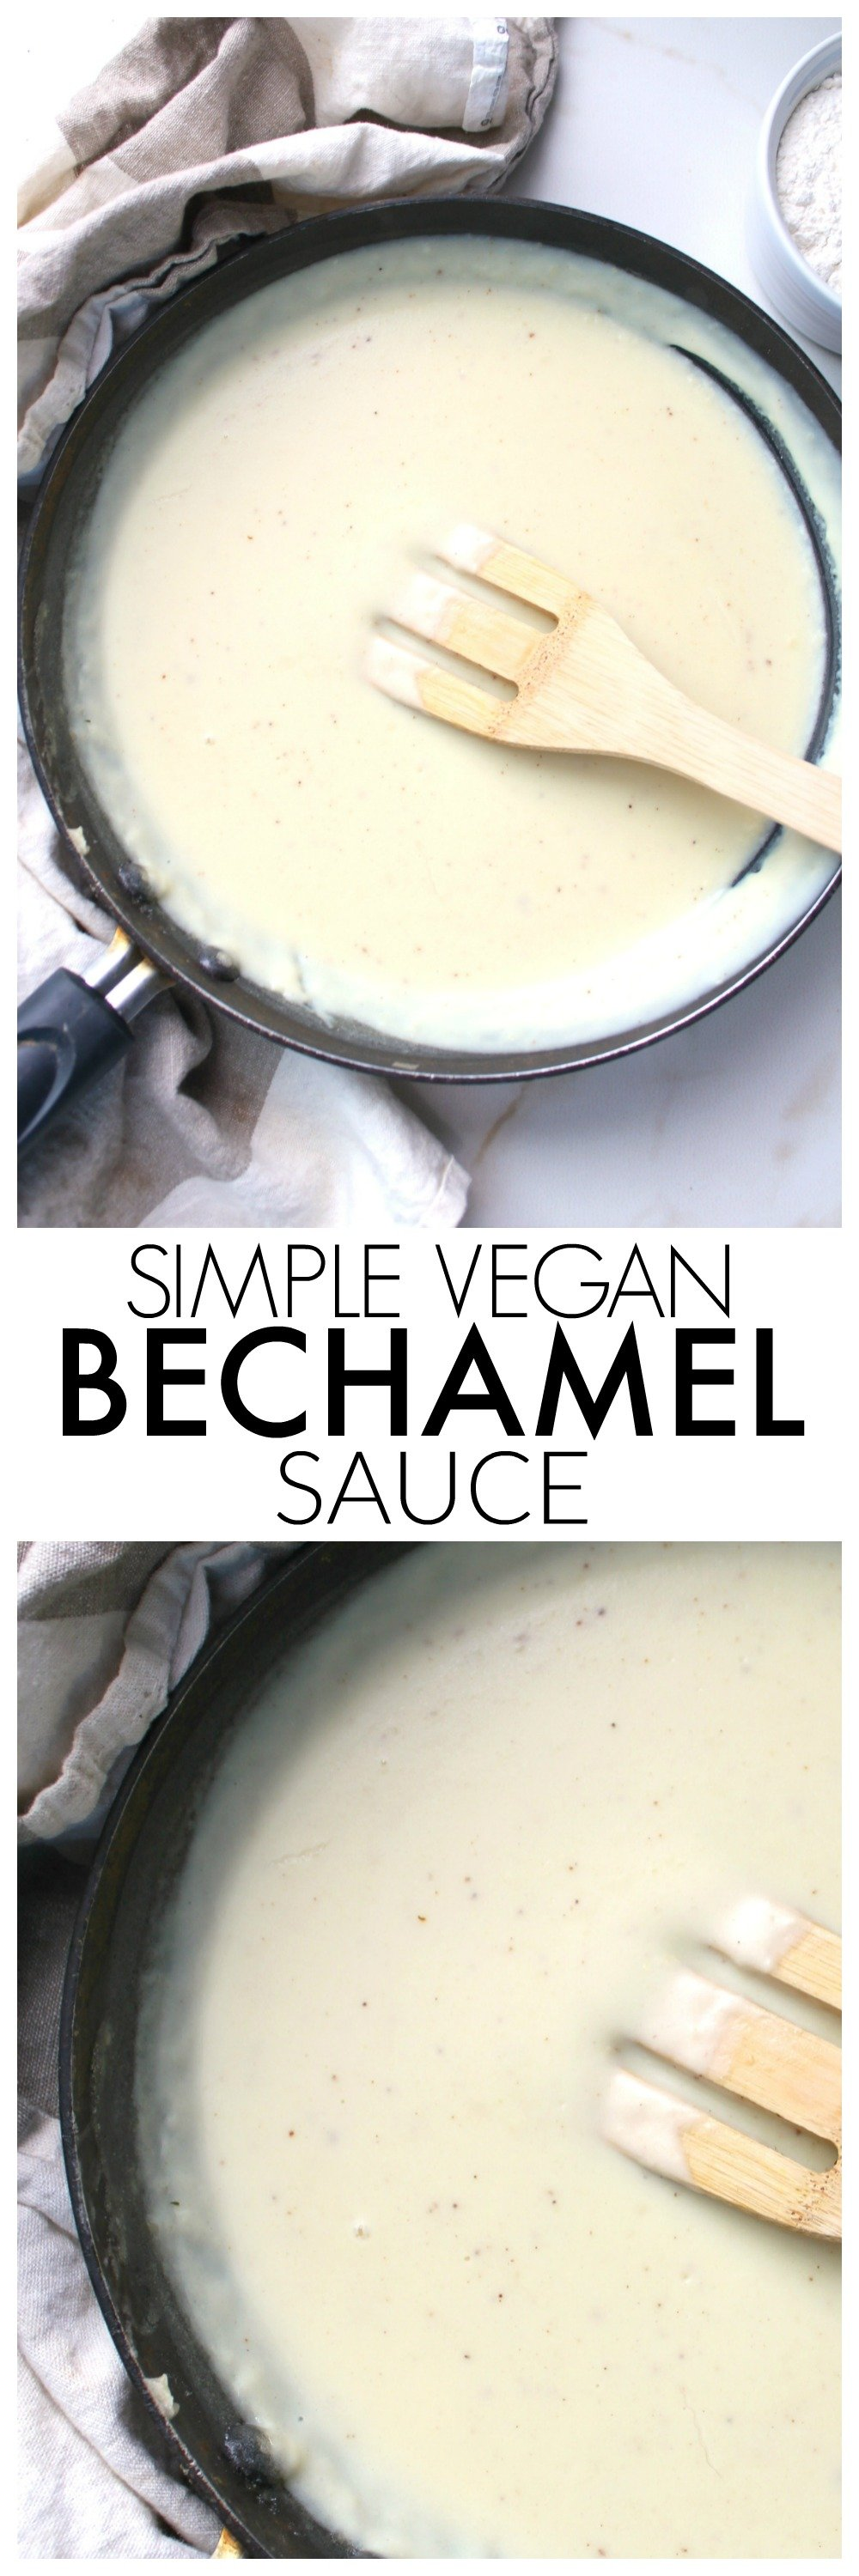 A classic creamy white sauce is vegan-ized with thisSimple Vegan Bechamel Sauce recipe. The perfect base sauce for any pasta dish   ThisSavoryVegan.com #vegan